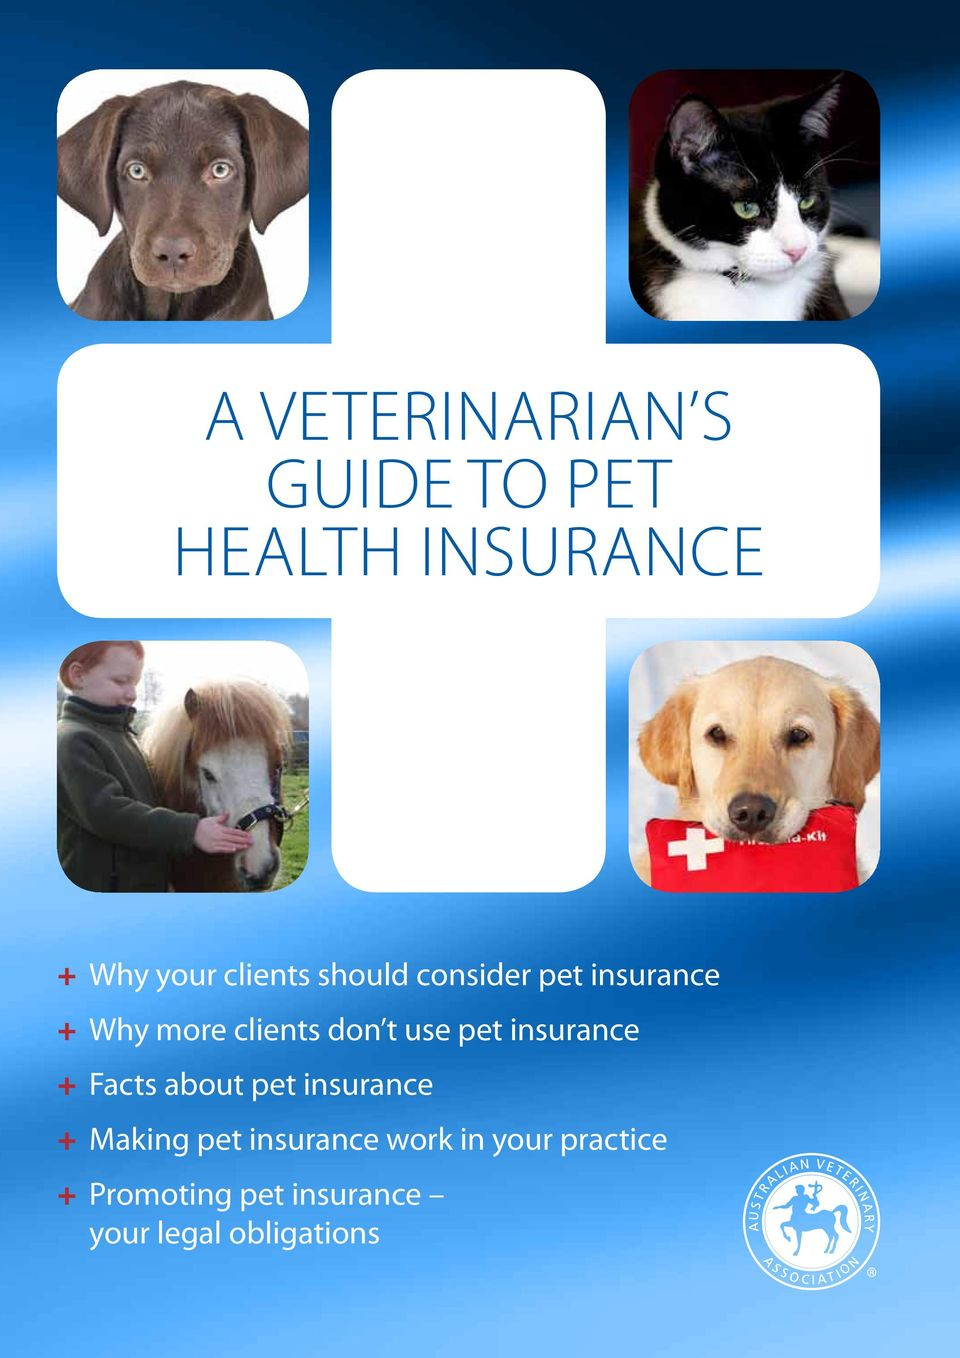 use pet insurance + Facts about pet insurance + Making pet